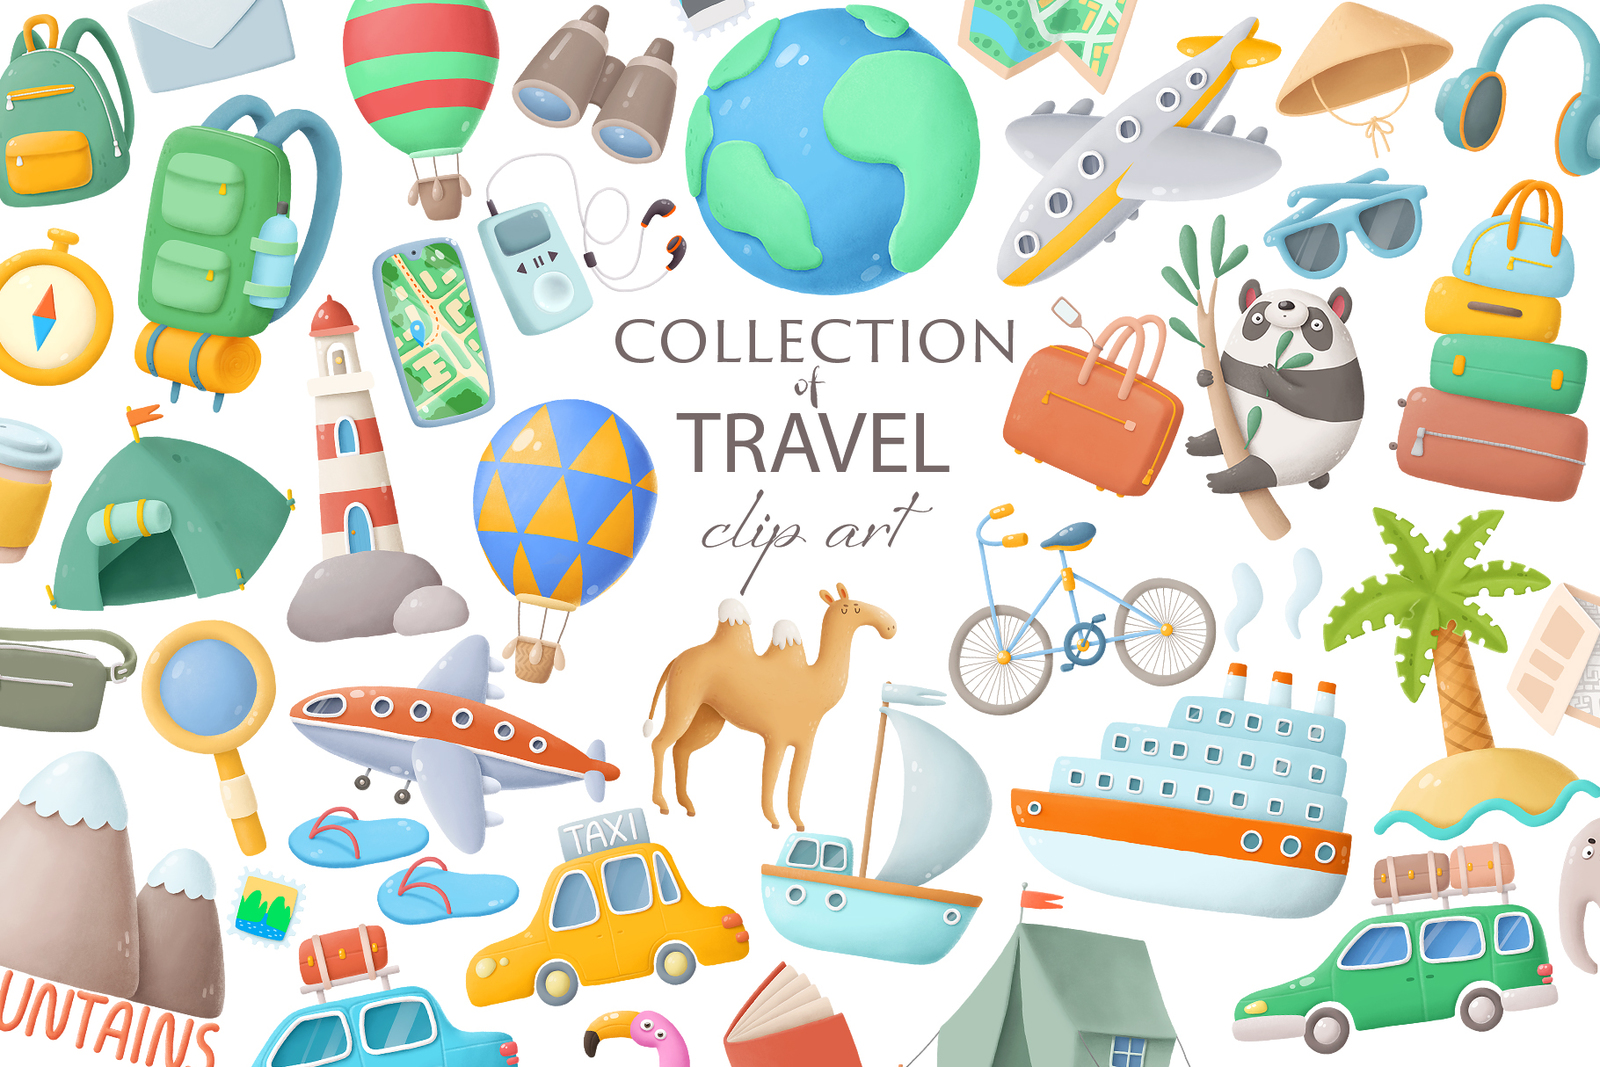 Travel clip art collection in Illustrations on Yellow Images Creative Store.